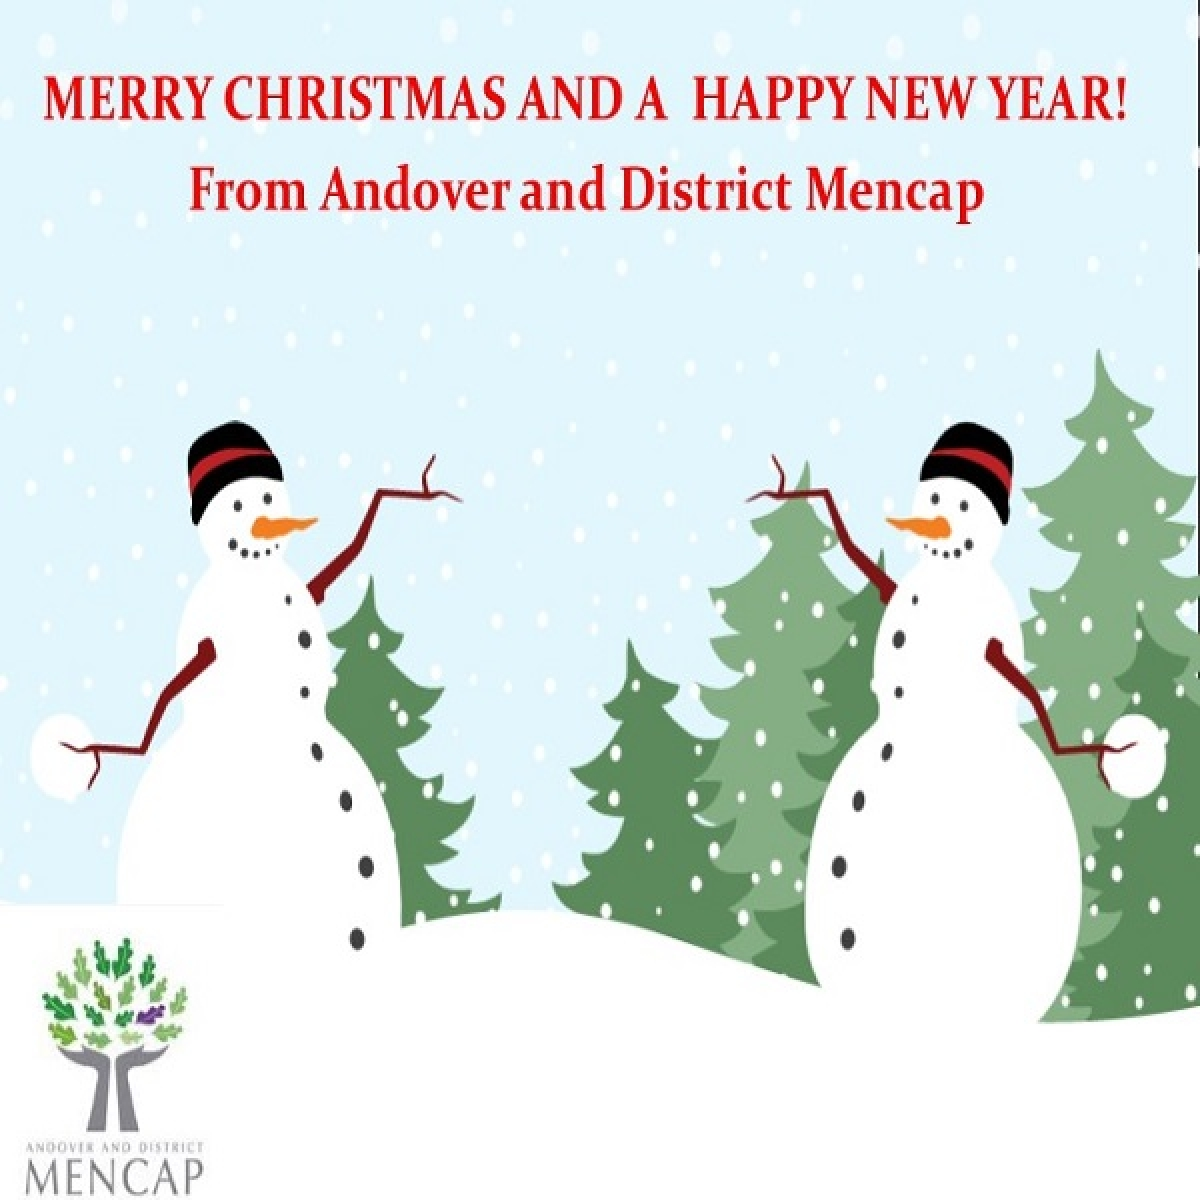 Send a card with Andover and District Mencap eCards